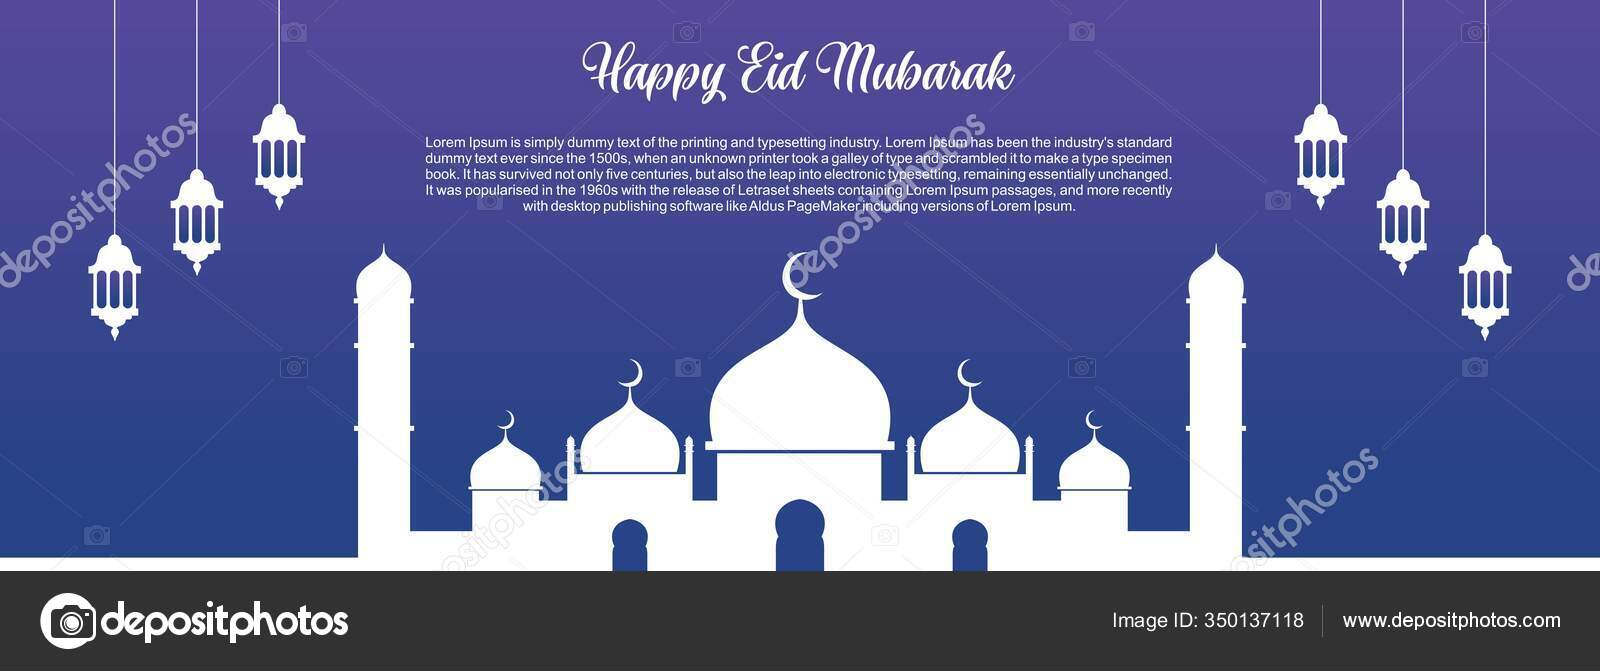 islamic background happy eid mubarak banner illustration islamic greeting card stock vector c saturdaynight design and branding 350137118 https depositphotos com 350137118 stock illustration islamic background happy eid mubarak html